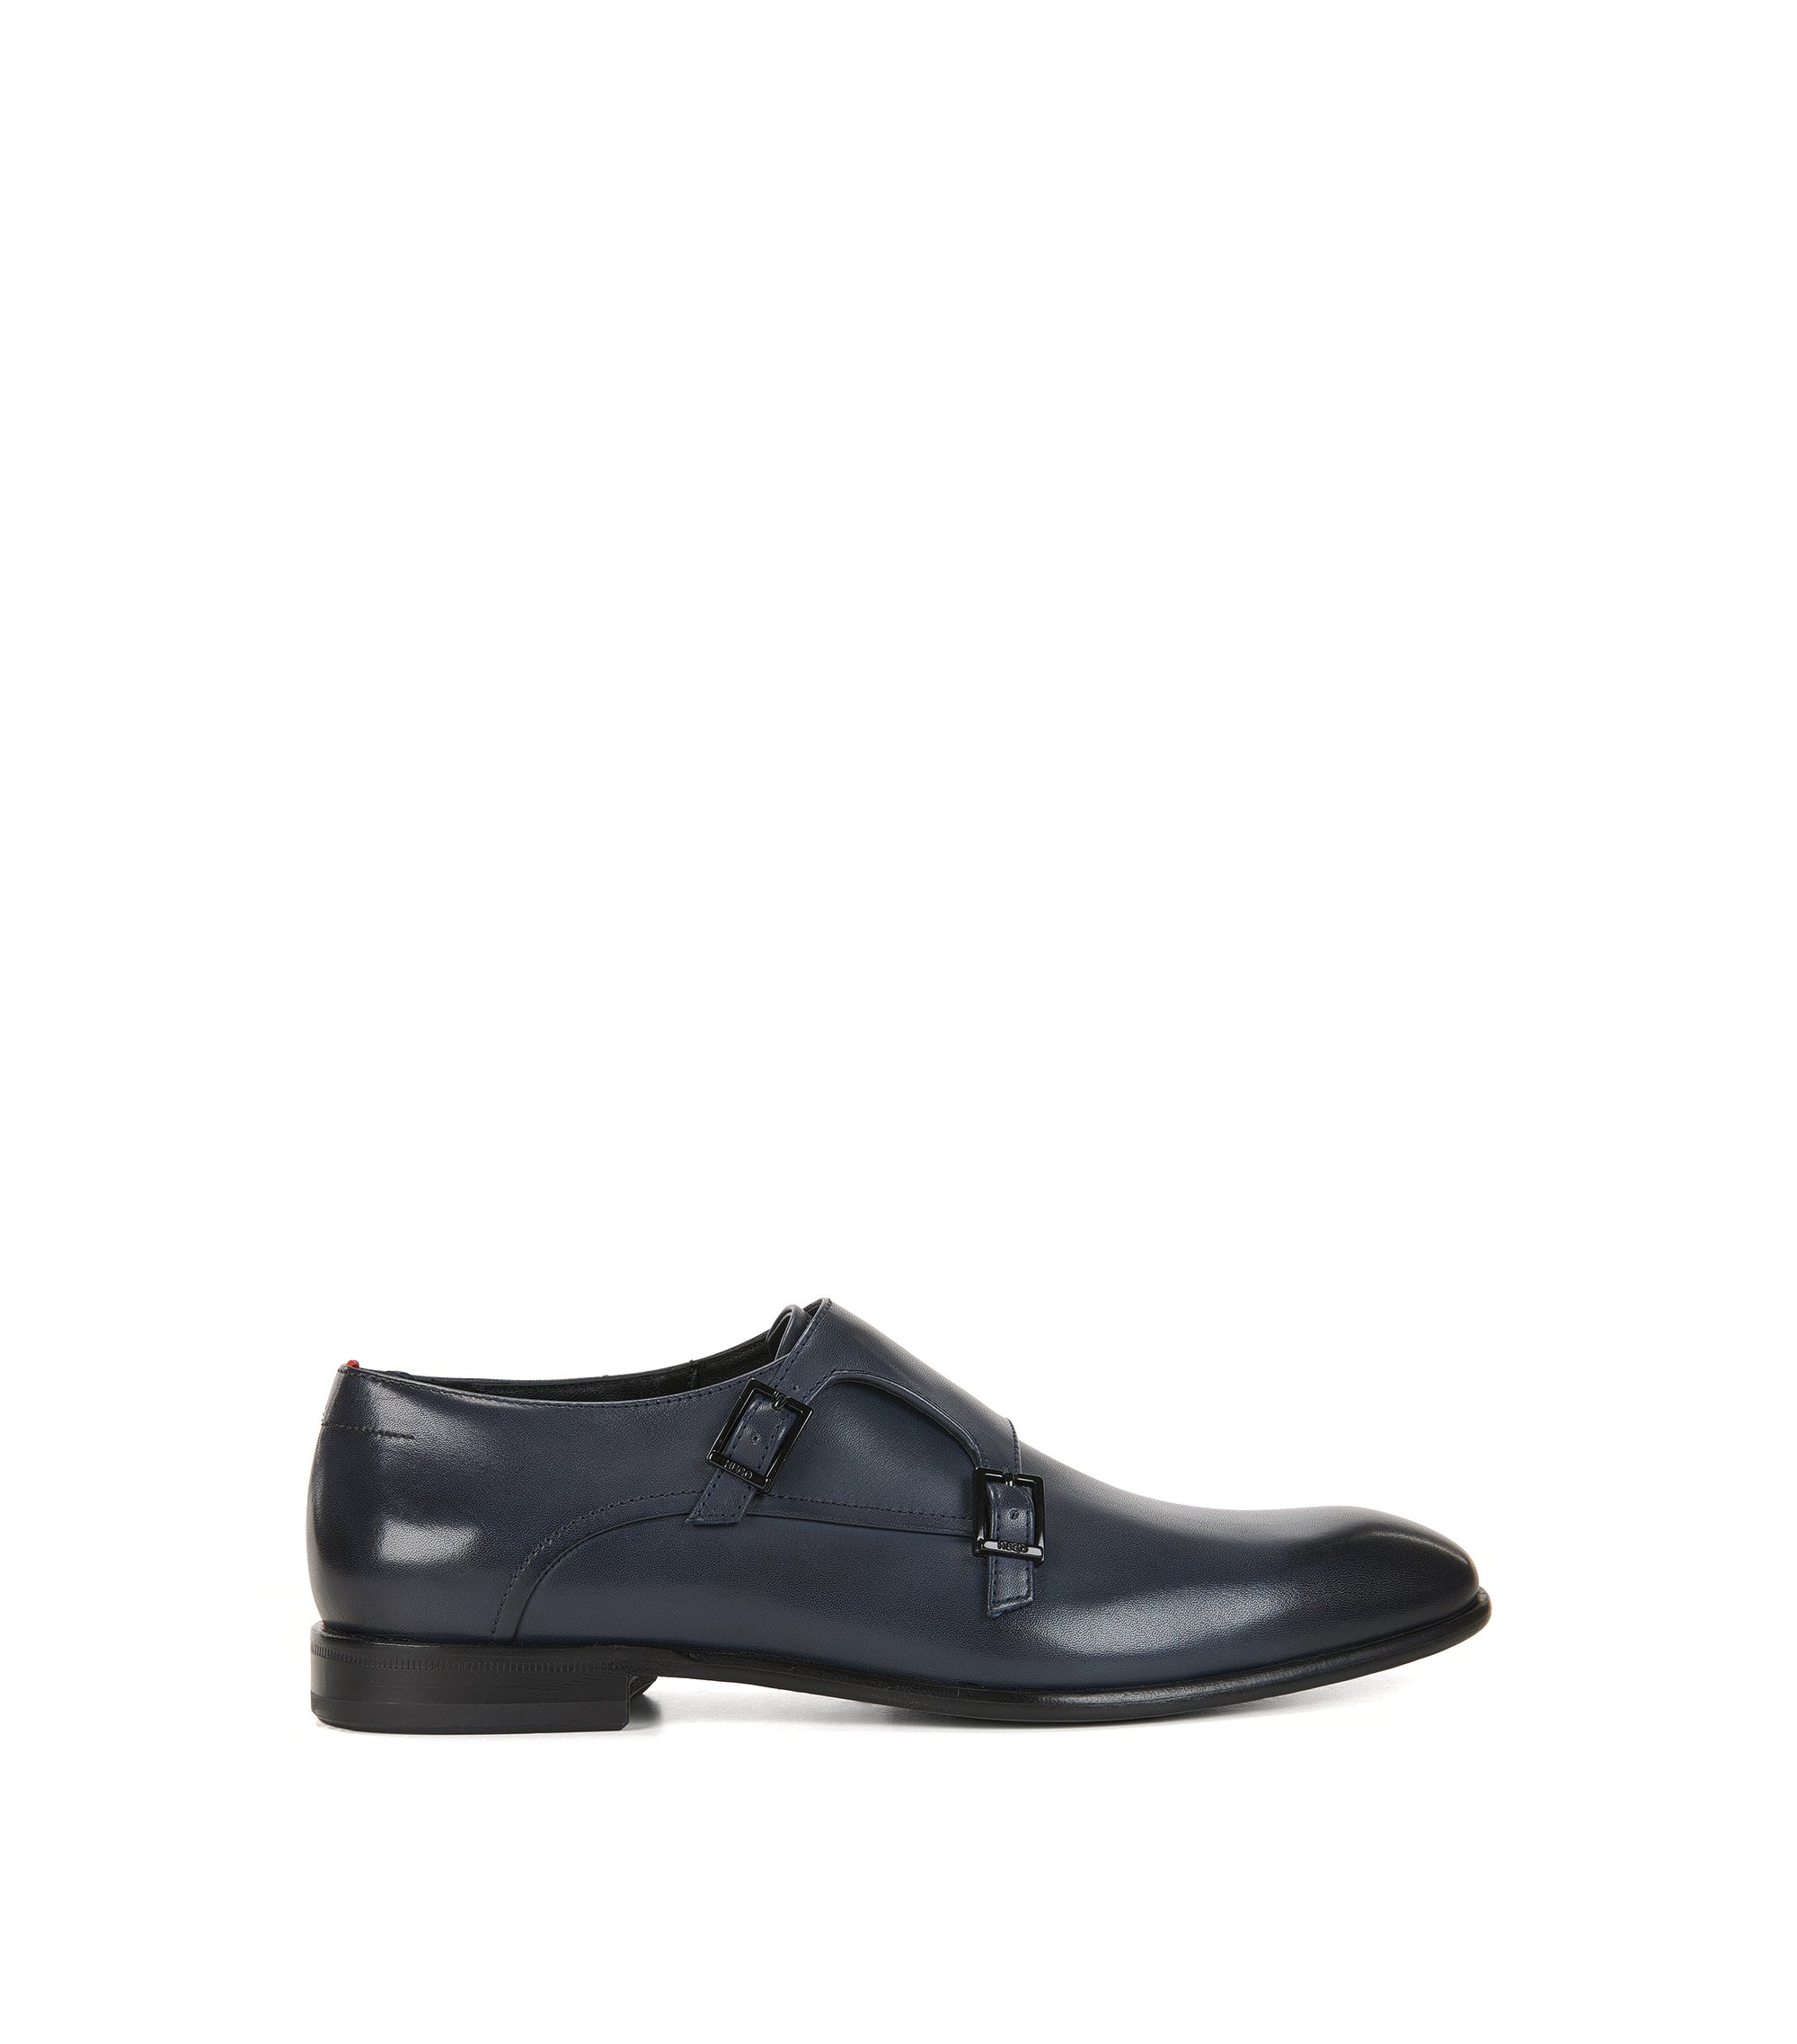 Leather Double Monk Strap Dress Shoe | Dressapp Monk BU, Dark Blue